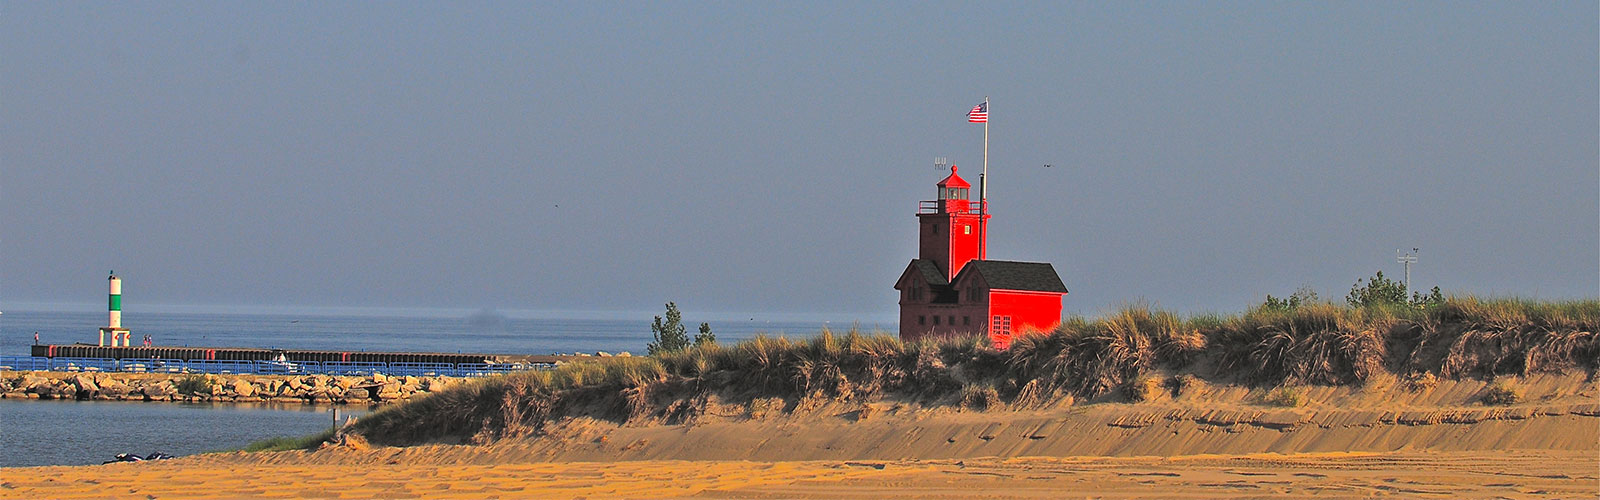 Macatawa Park Lighthouse